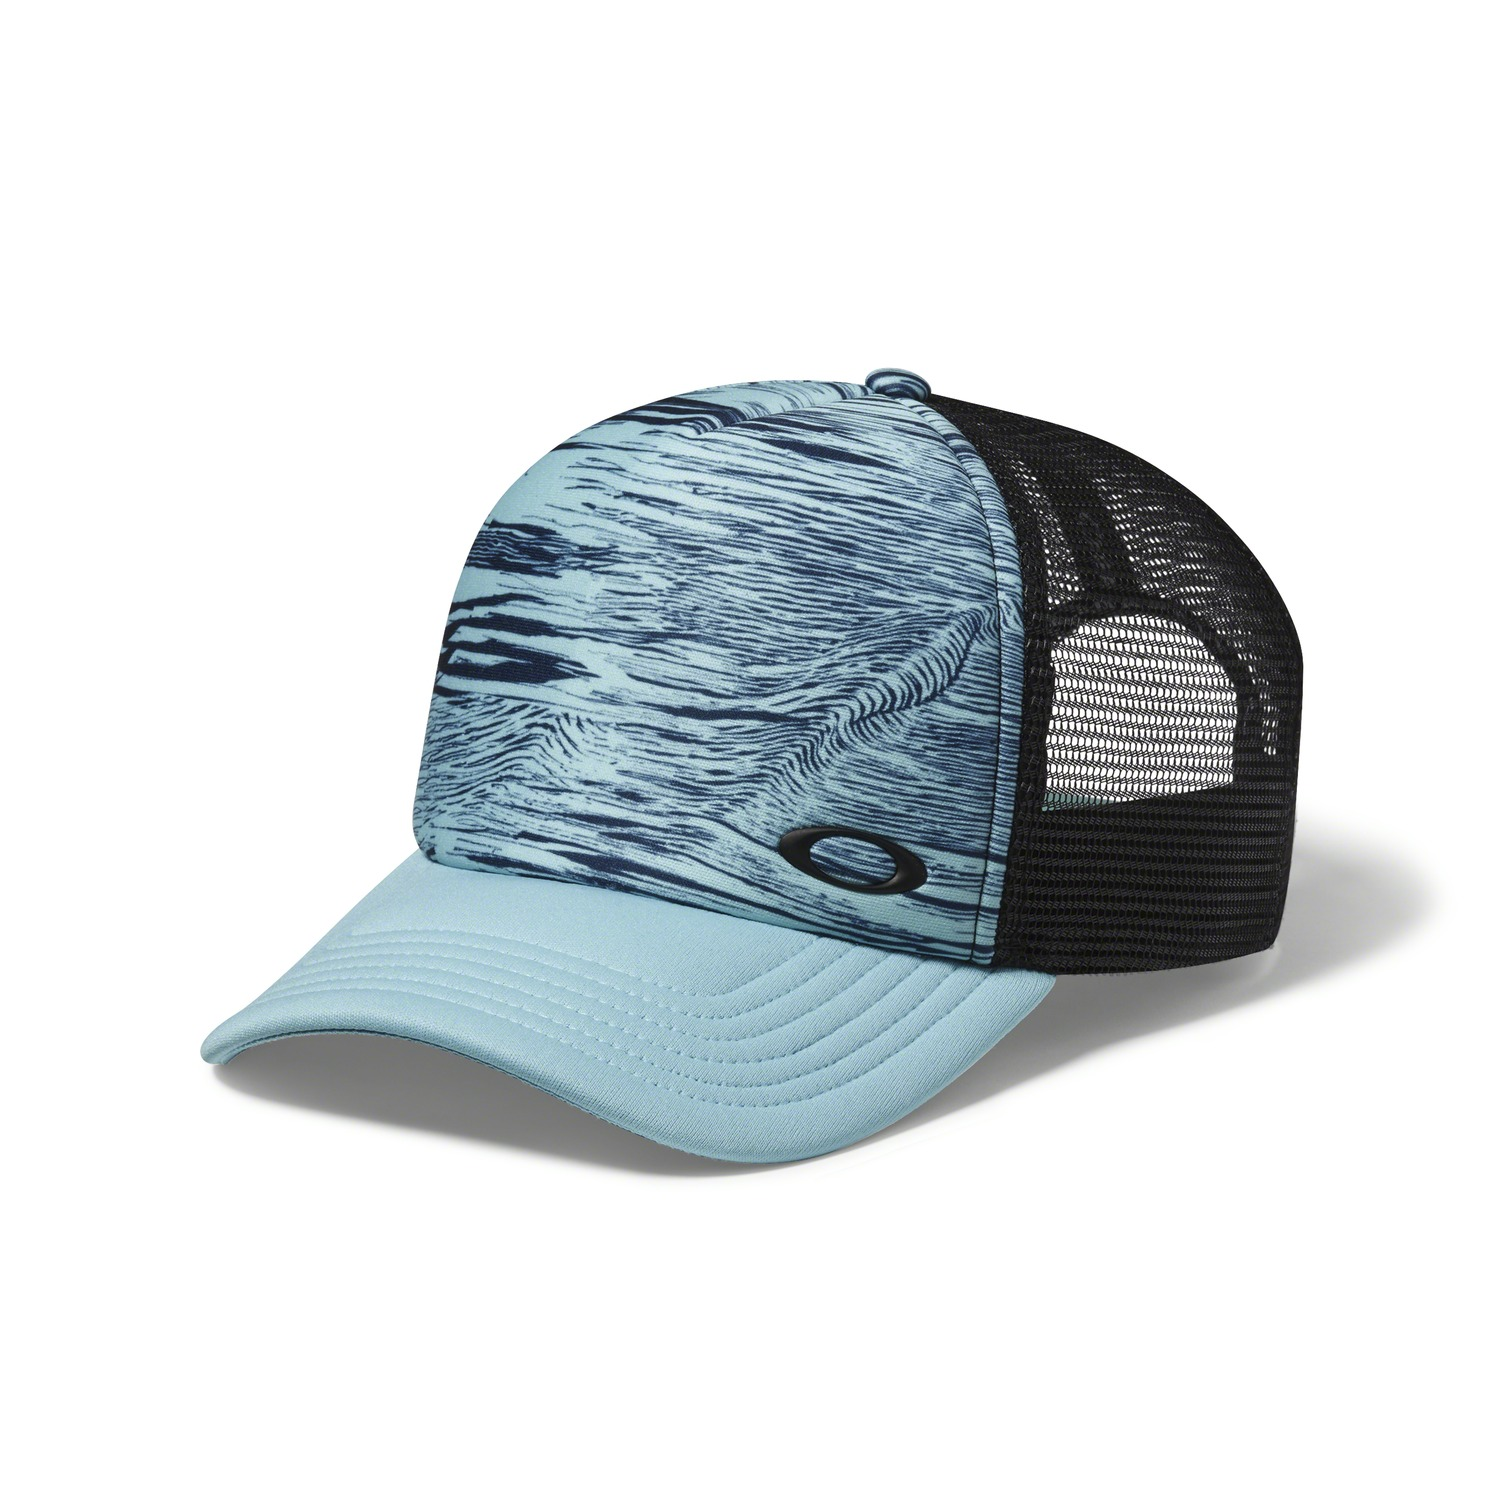 Details about New Oakley Golf Mesh Sublimated Trucker Hat Cap 911700 bf9fd31f506